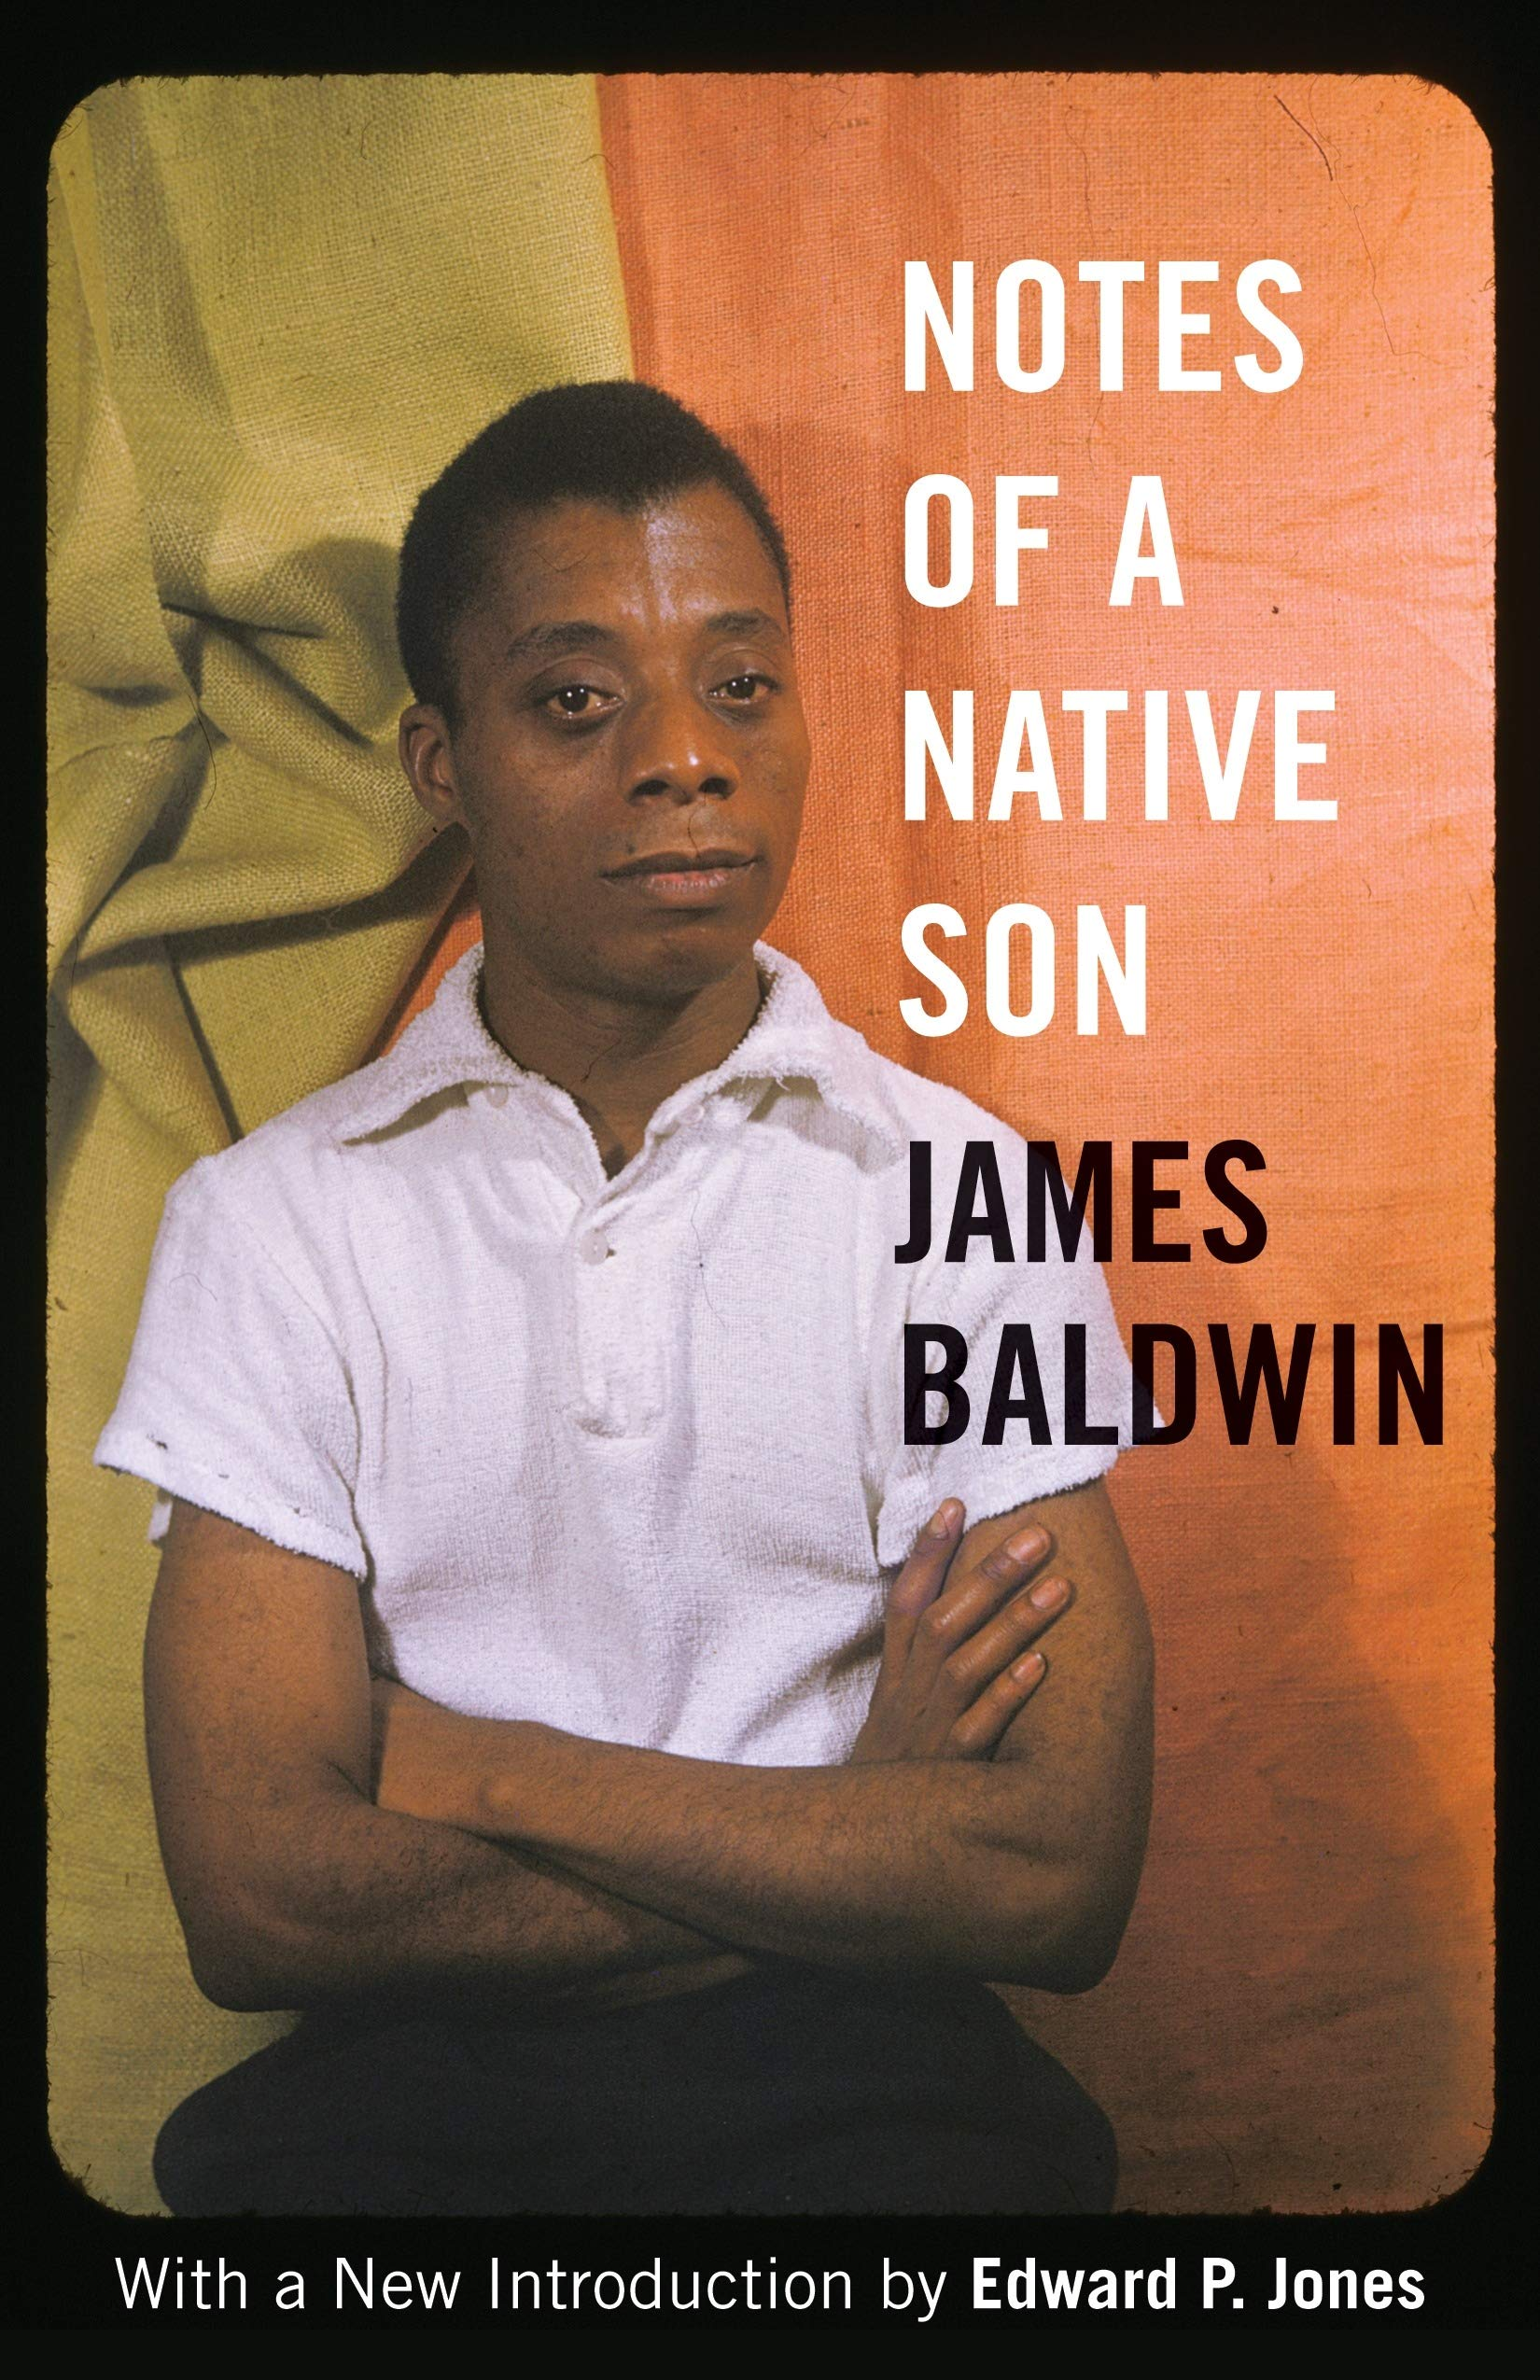 The Thesis Statement In A Research Essay Should Amazoncom Notes Of A Native Son  James Baldwin Edward P  Jones Books How To Write Essay Papers also Essay On High School Amazoncom Notes Of A Native Son  James Baldwin  Descriptive Essay Topics For High School Students